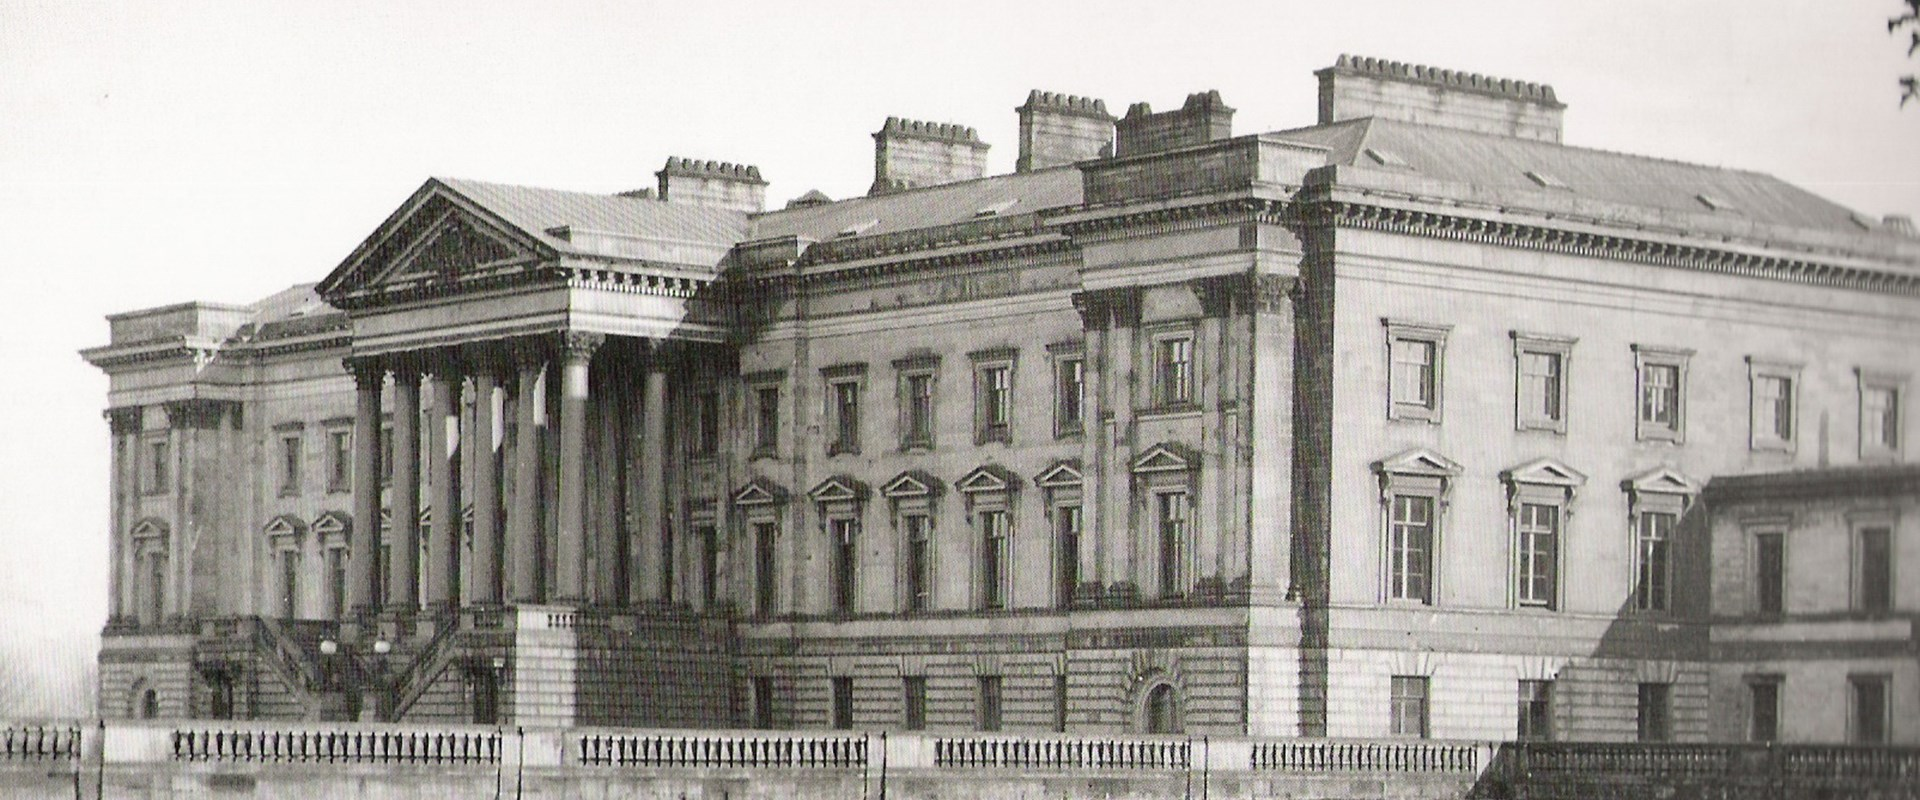 The Rise and Fall of Hamilton Palace